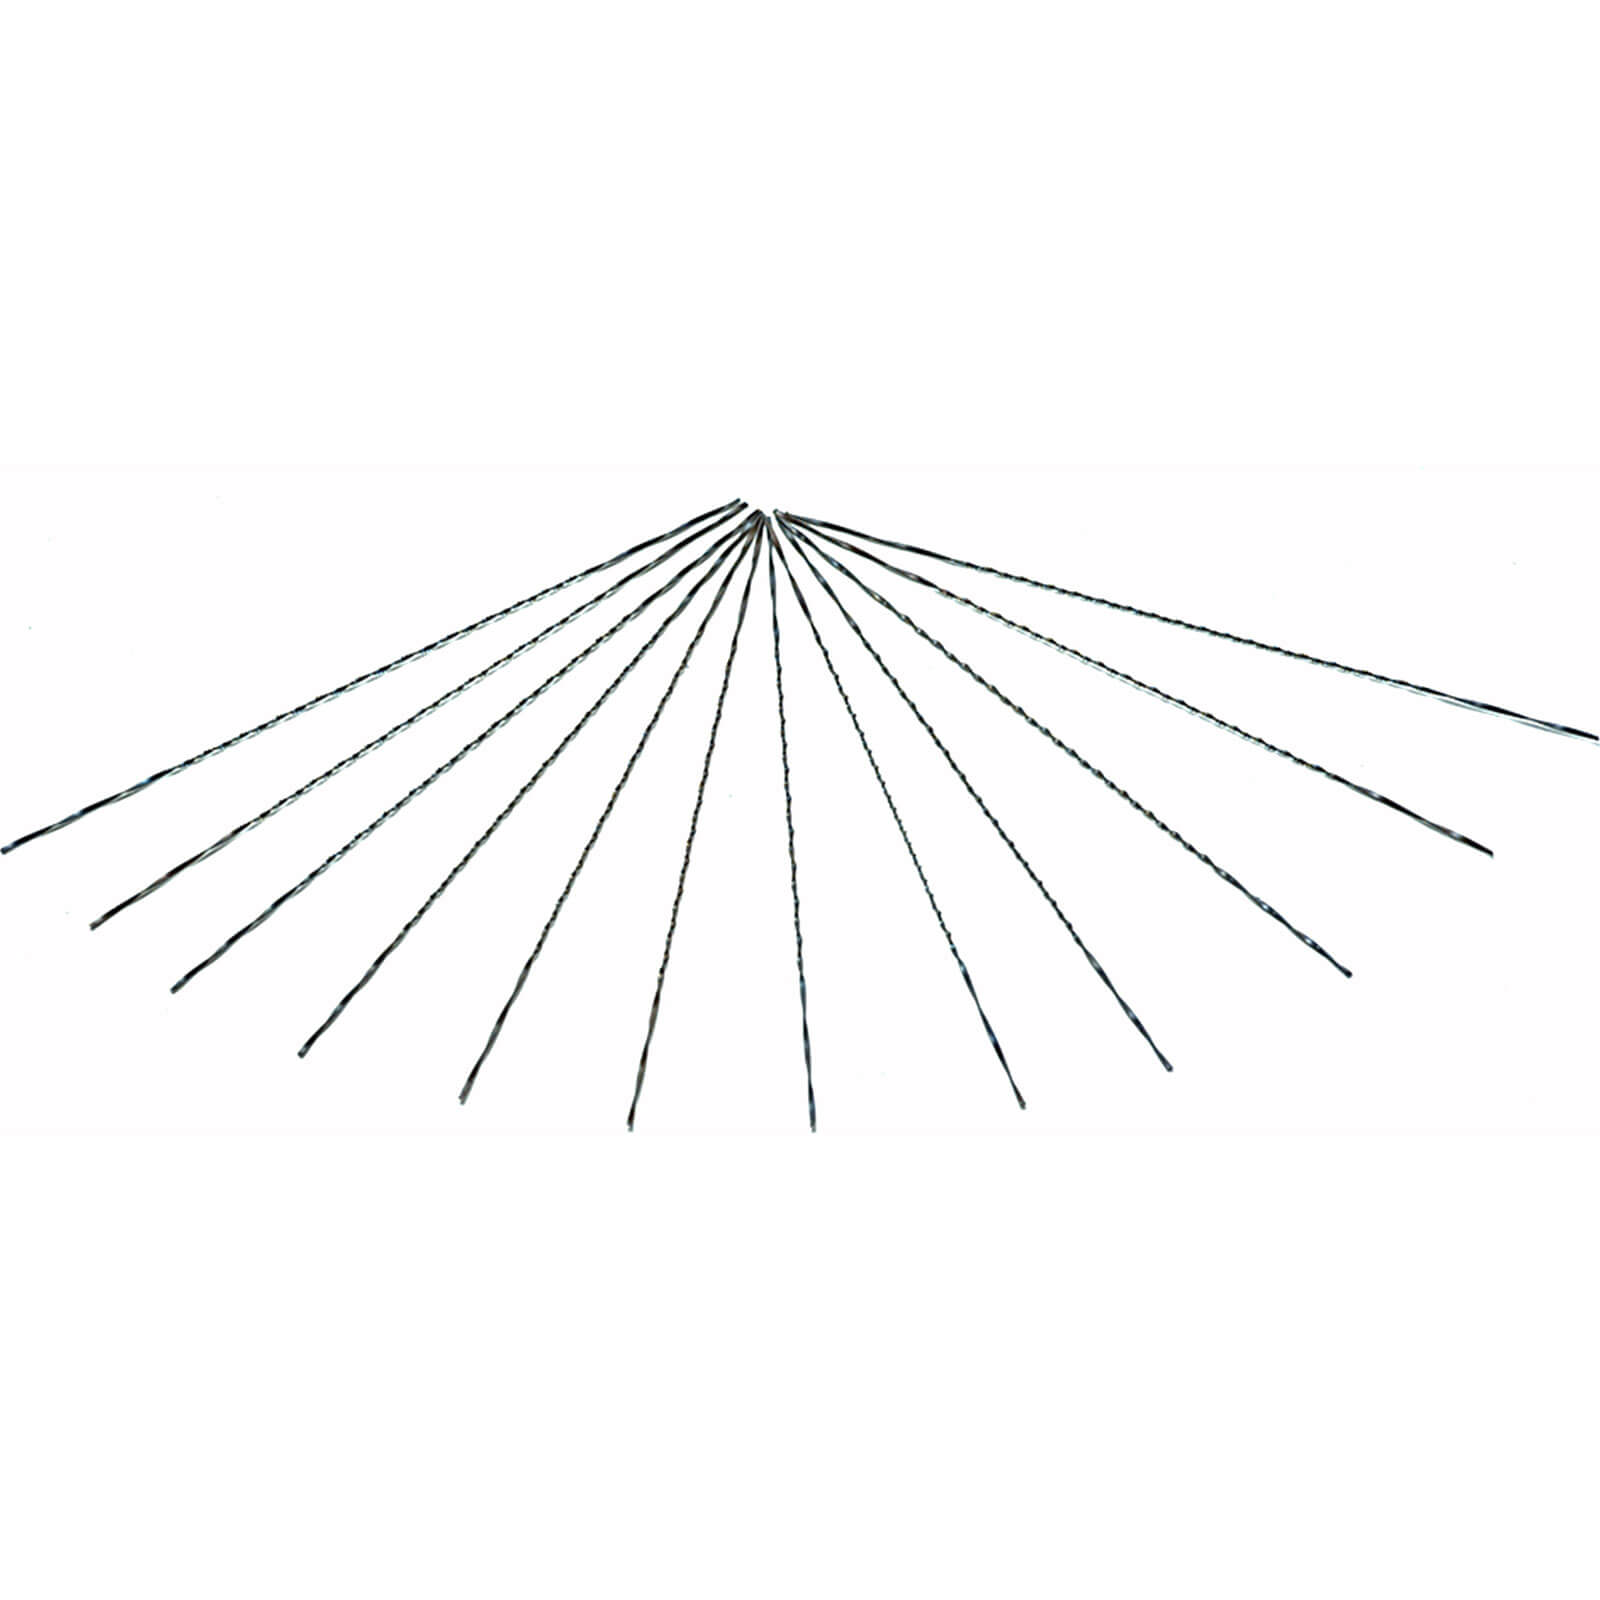 Image of Bahco Spiral Fretsaw Blades 130mm Medium Pack of 1